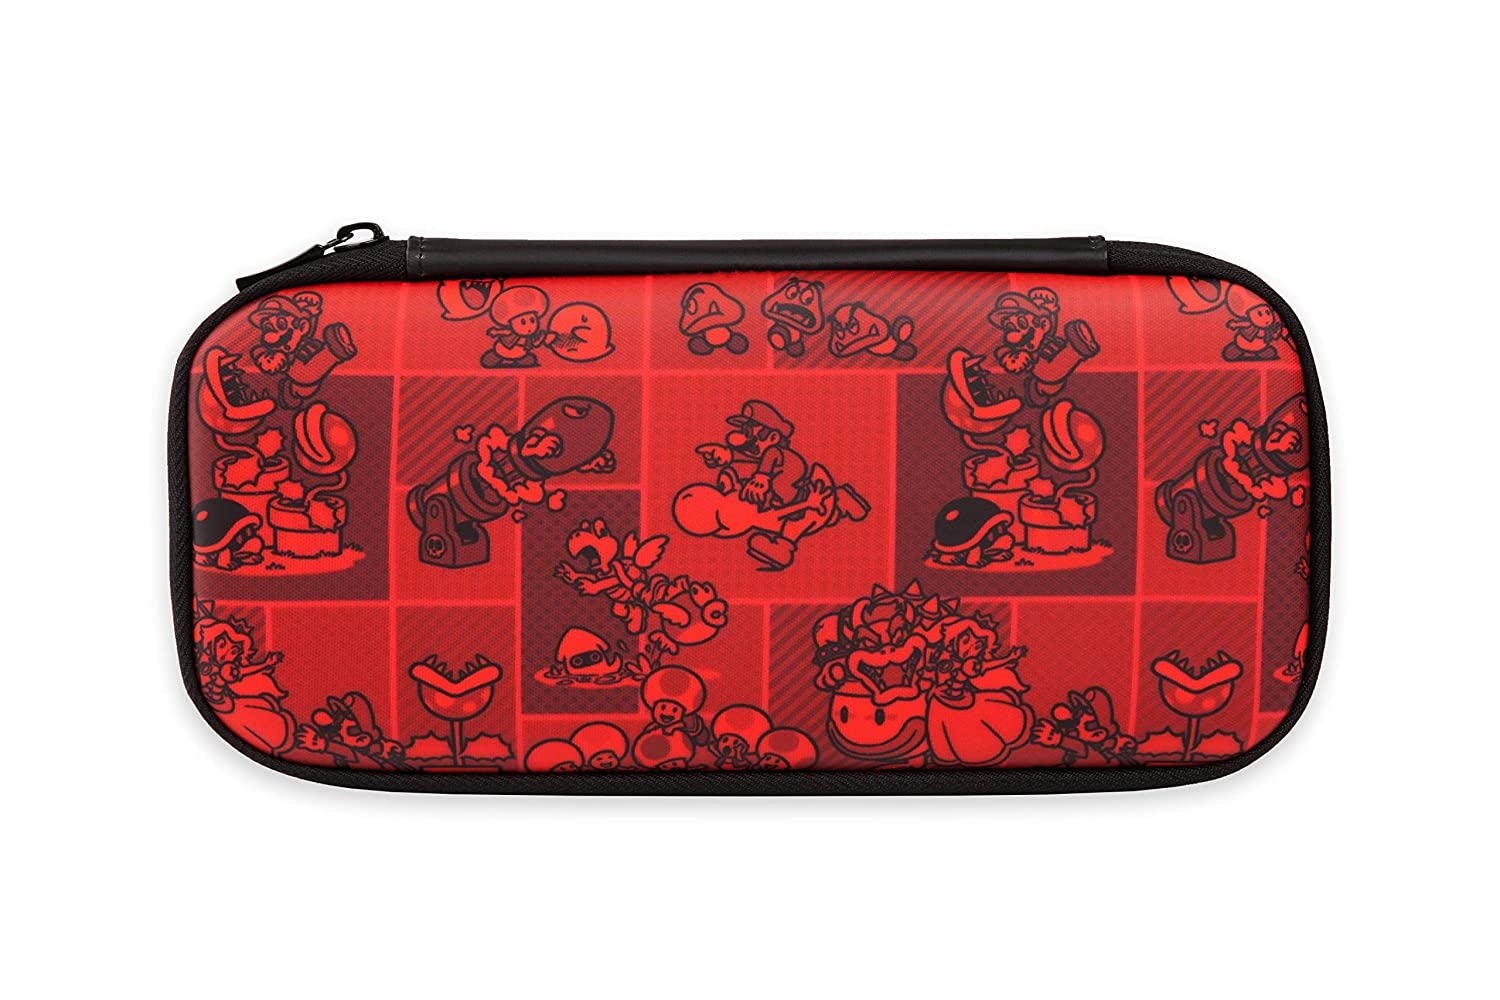 Amazon.com: Stealth Case for Nintendo Switch - Super Mario ...